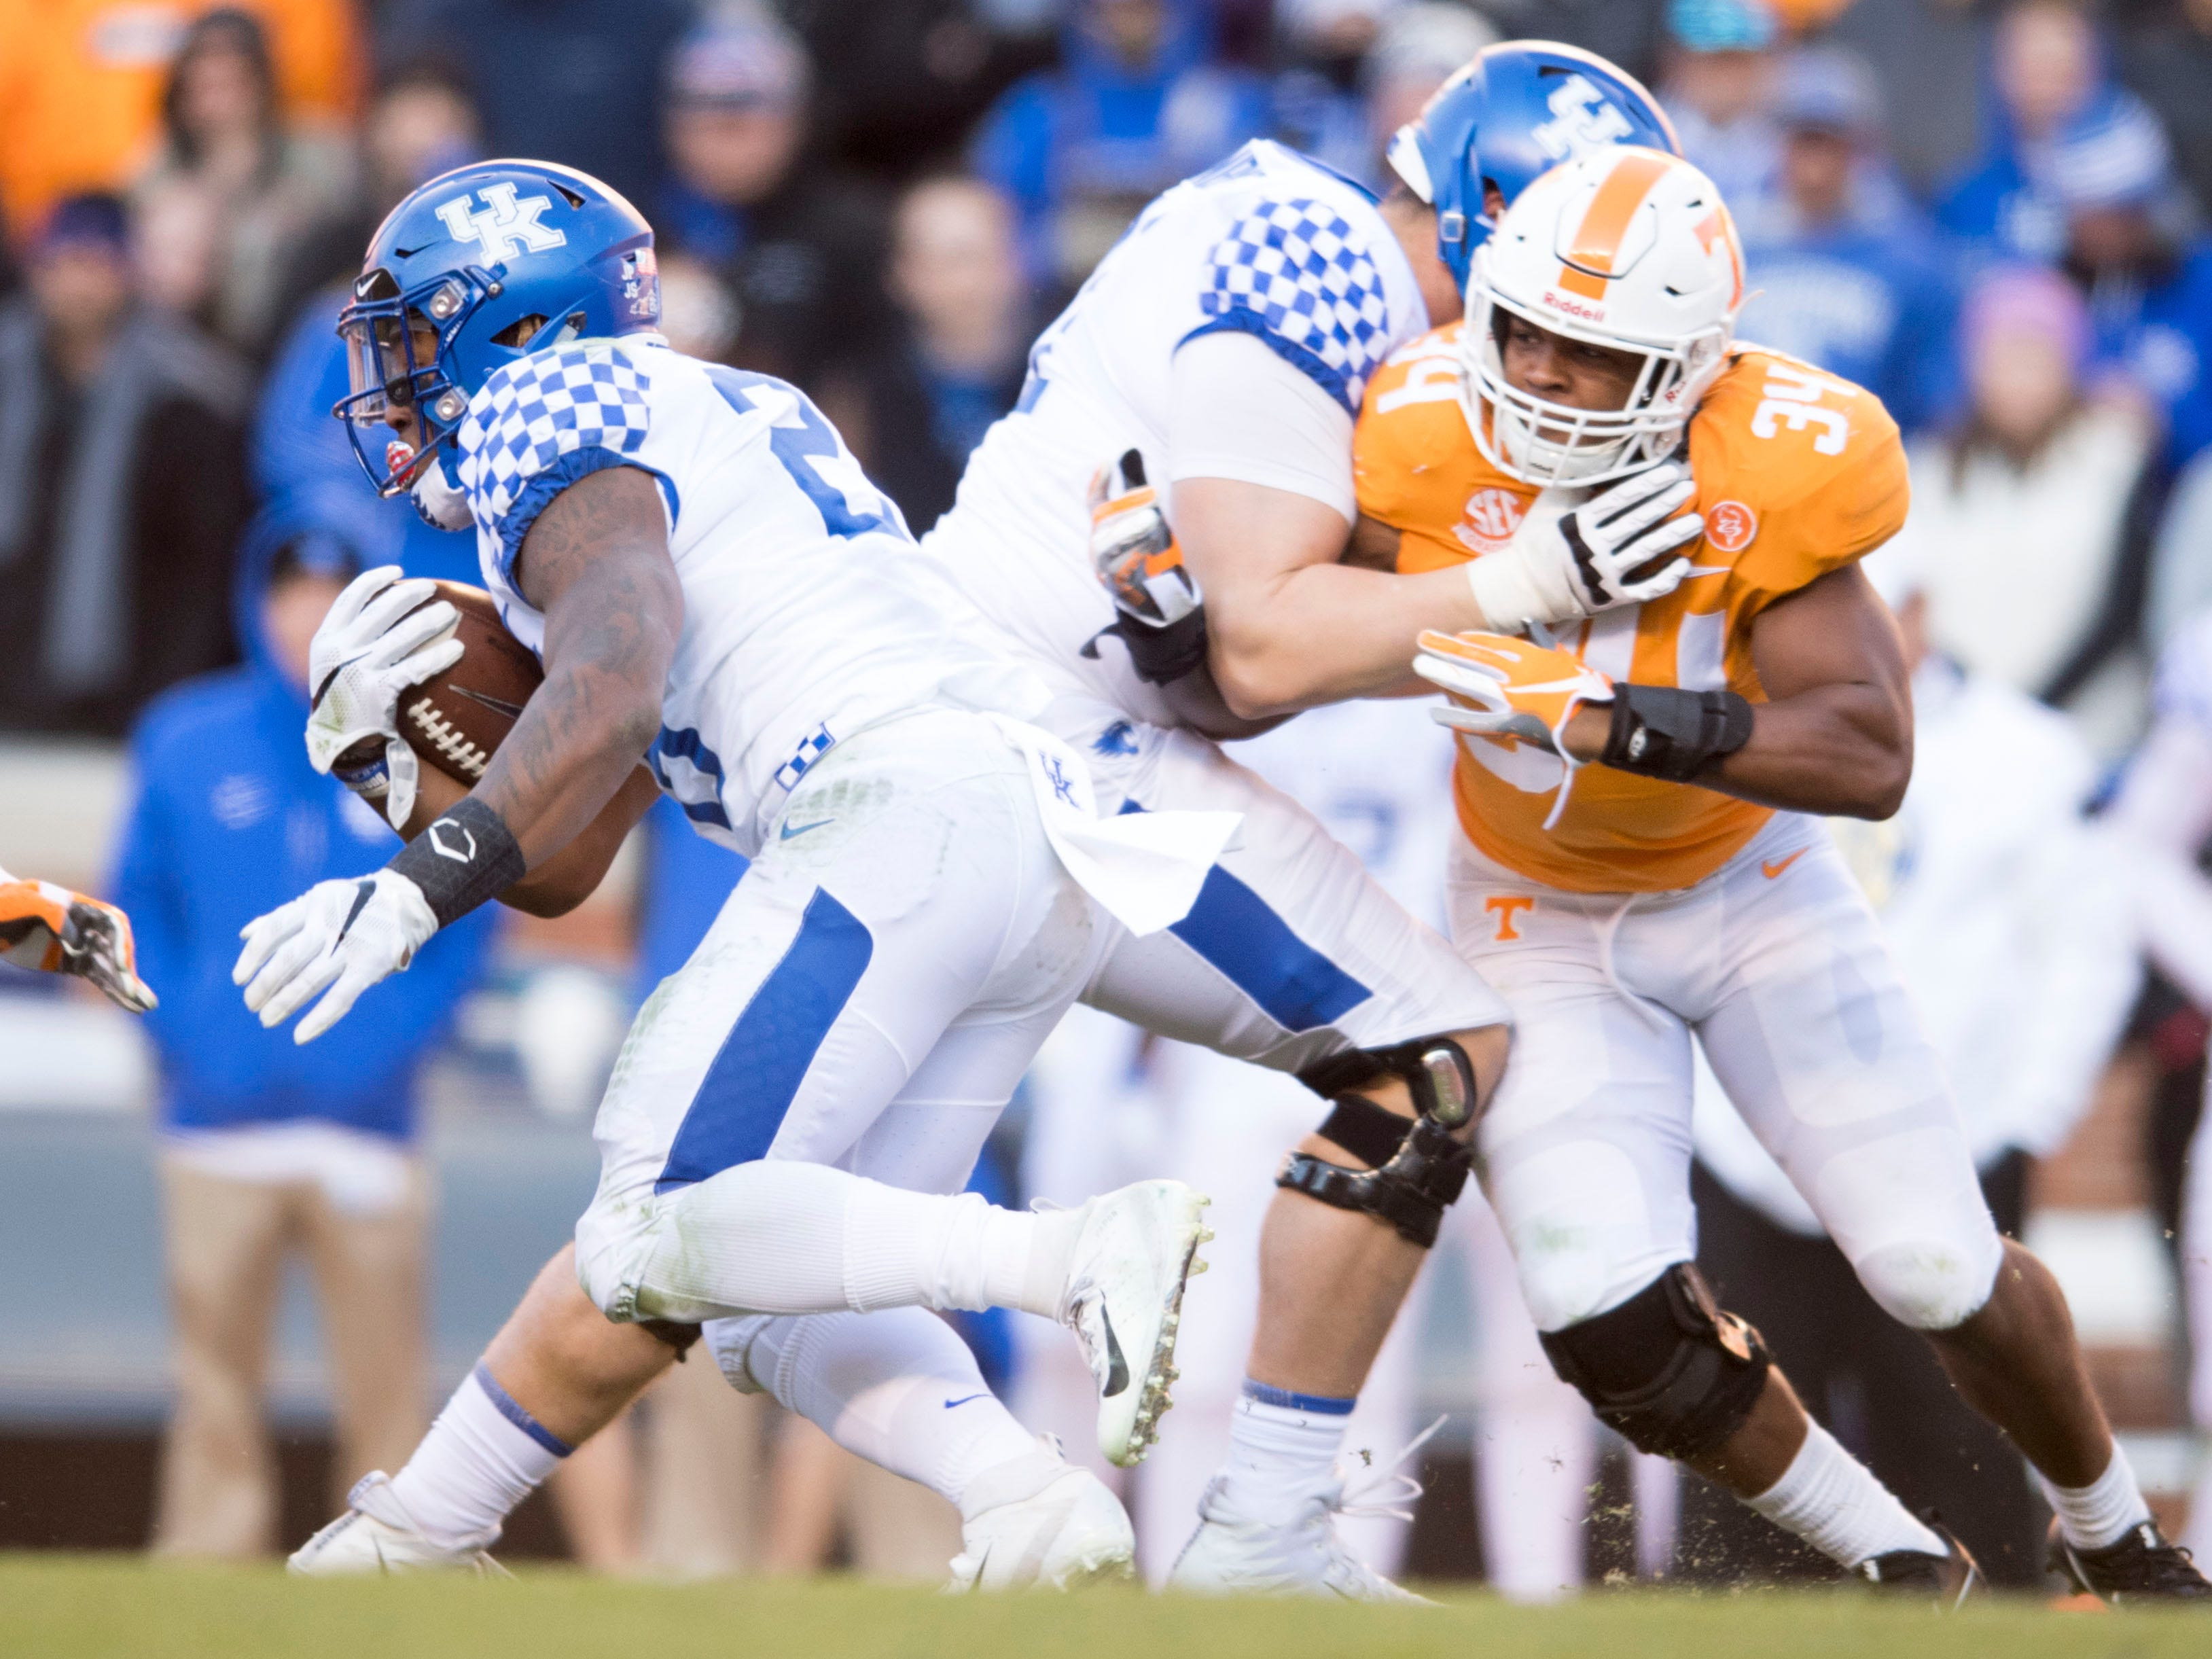 Tennessee linebacker Darrin Kirkland Jr. (34)  tries to break through to Kentucky wide receiver Dorian Baker (2) during a game between Tennessee and Kentucky at Neyland Stadium in Knoxville, Tennessee on Saturday, November 10, 2018.